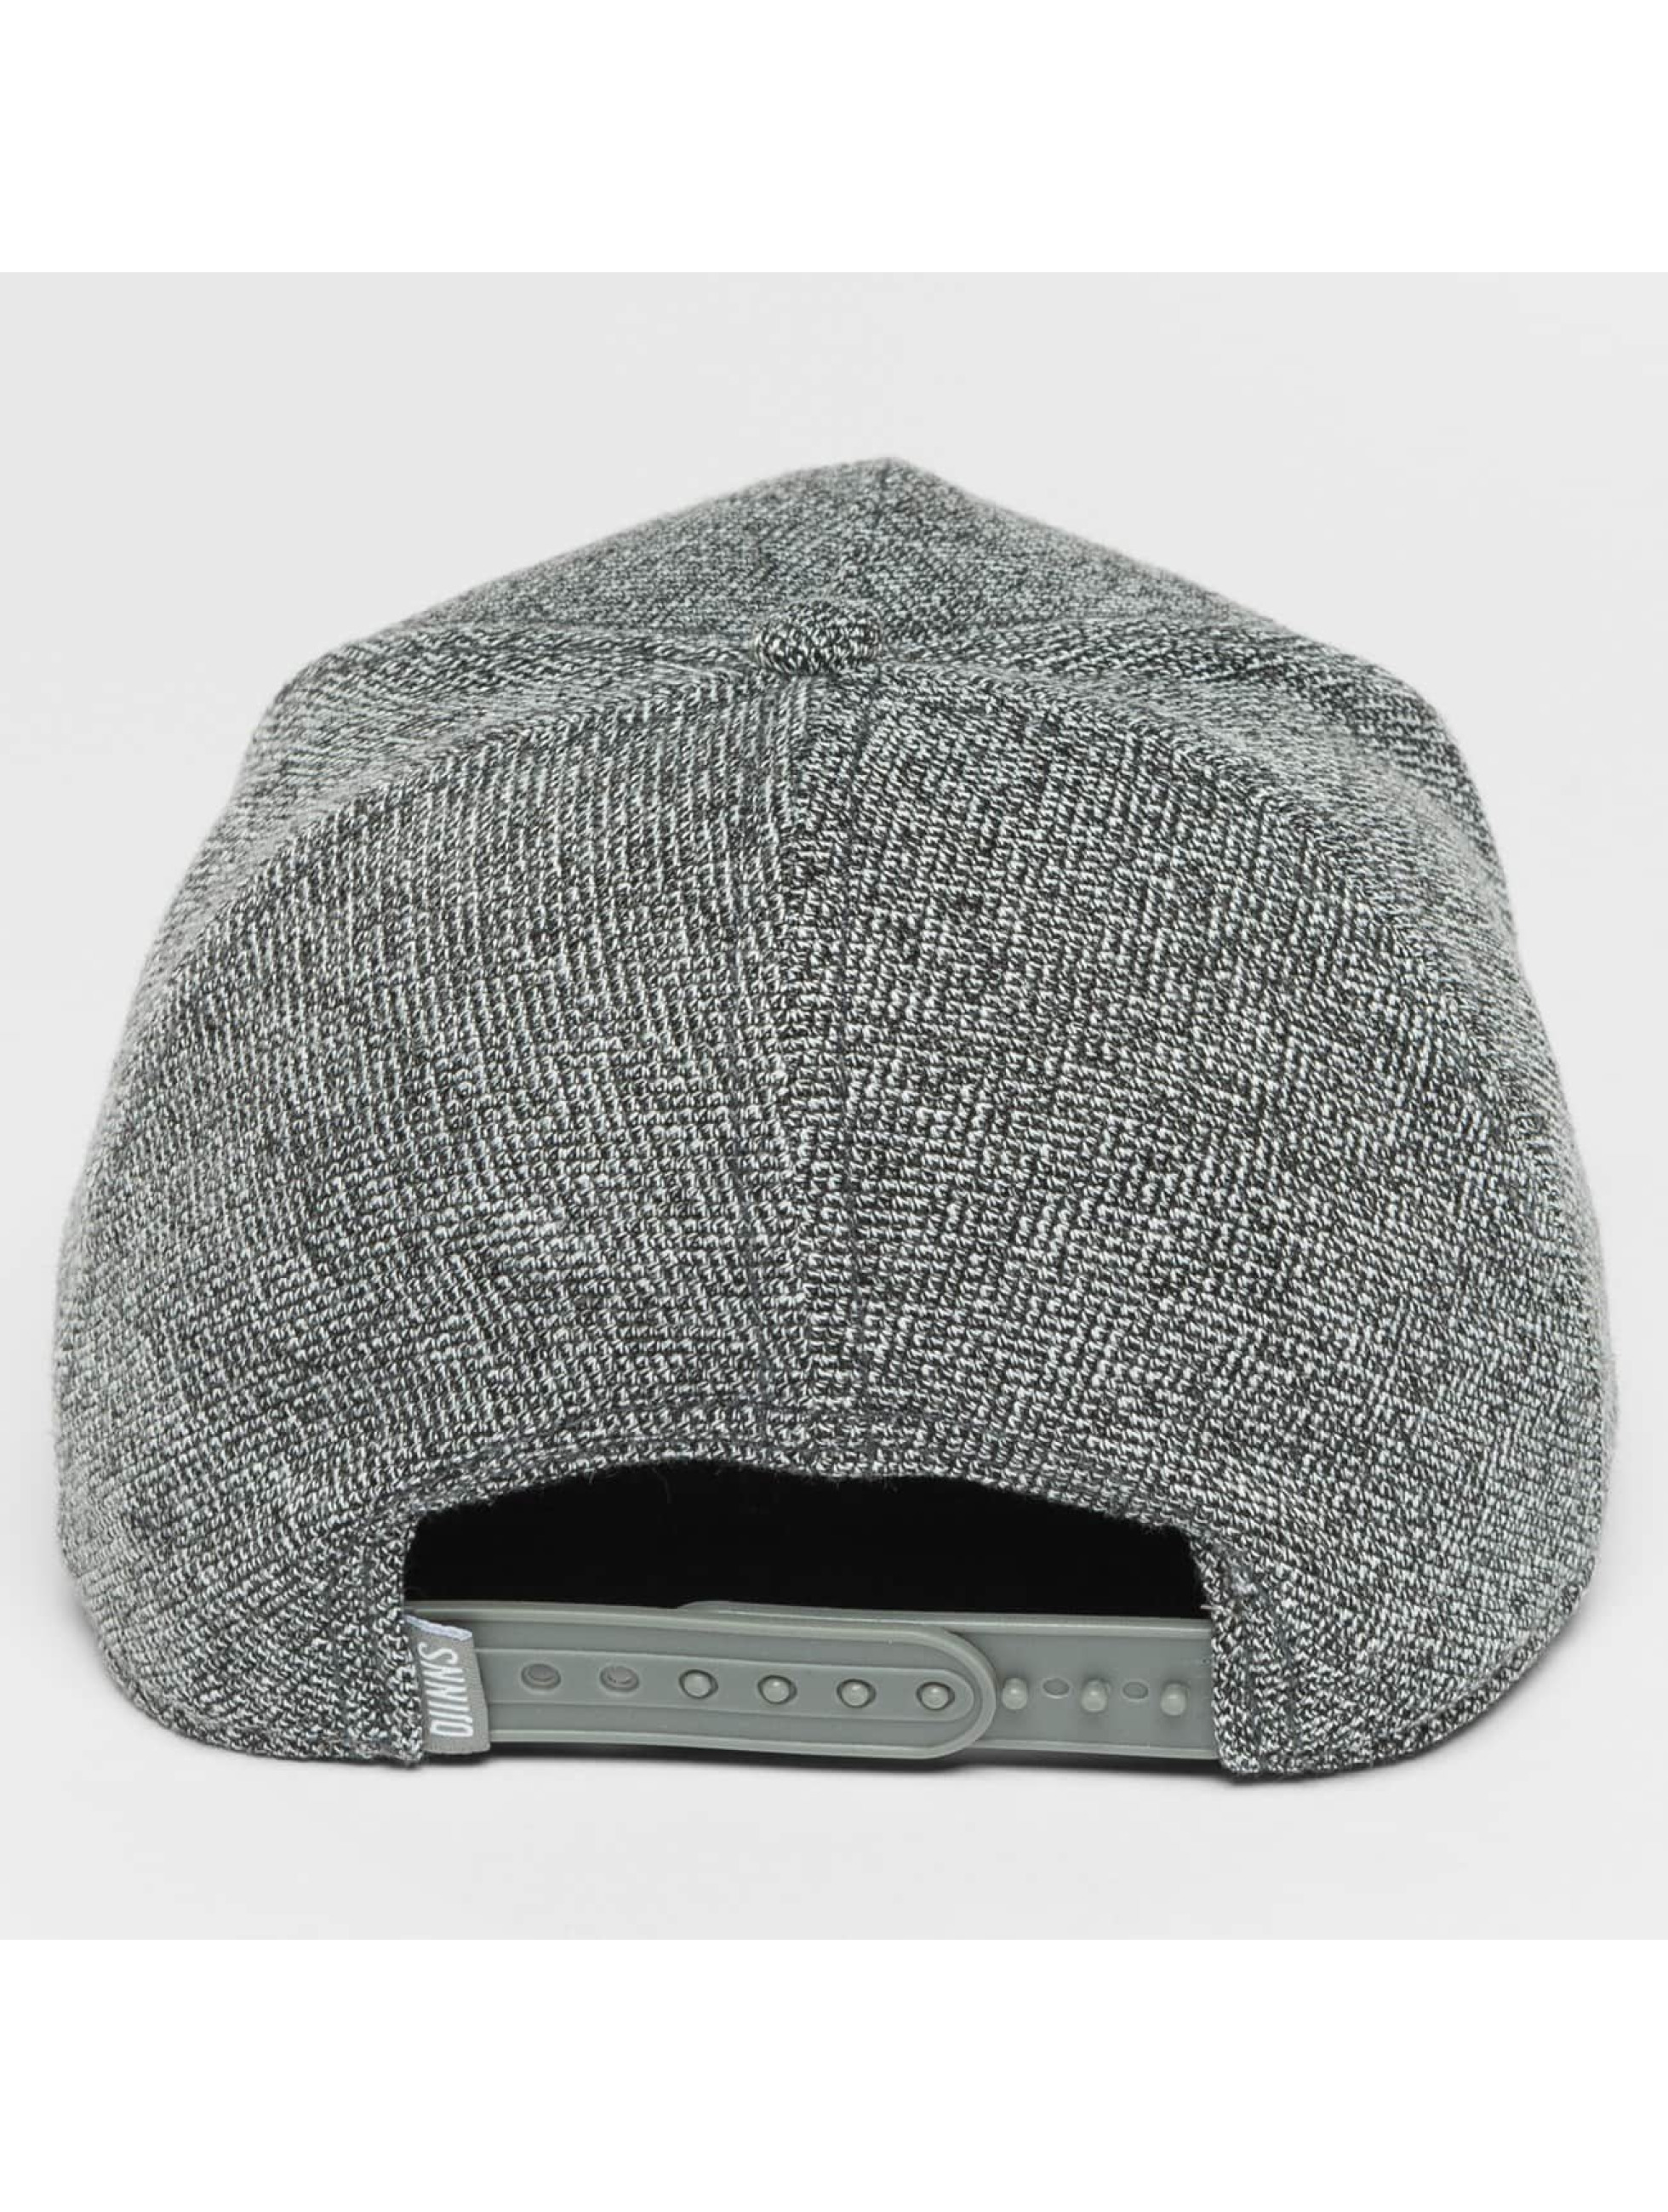 Djinns Snapback Cap HFT Full Bubble Piquee grey